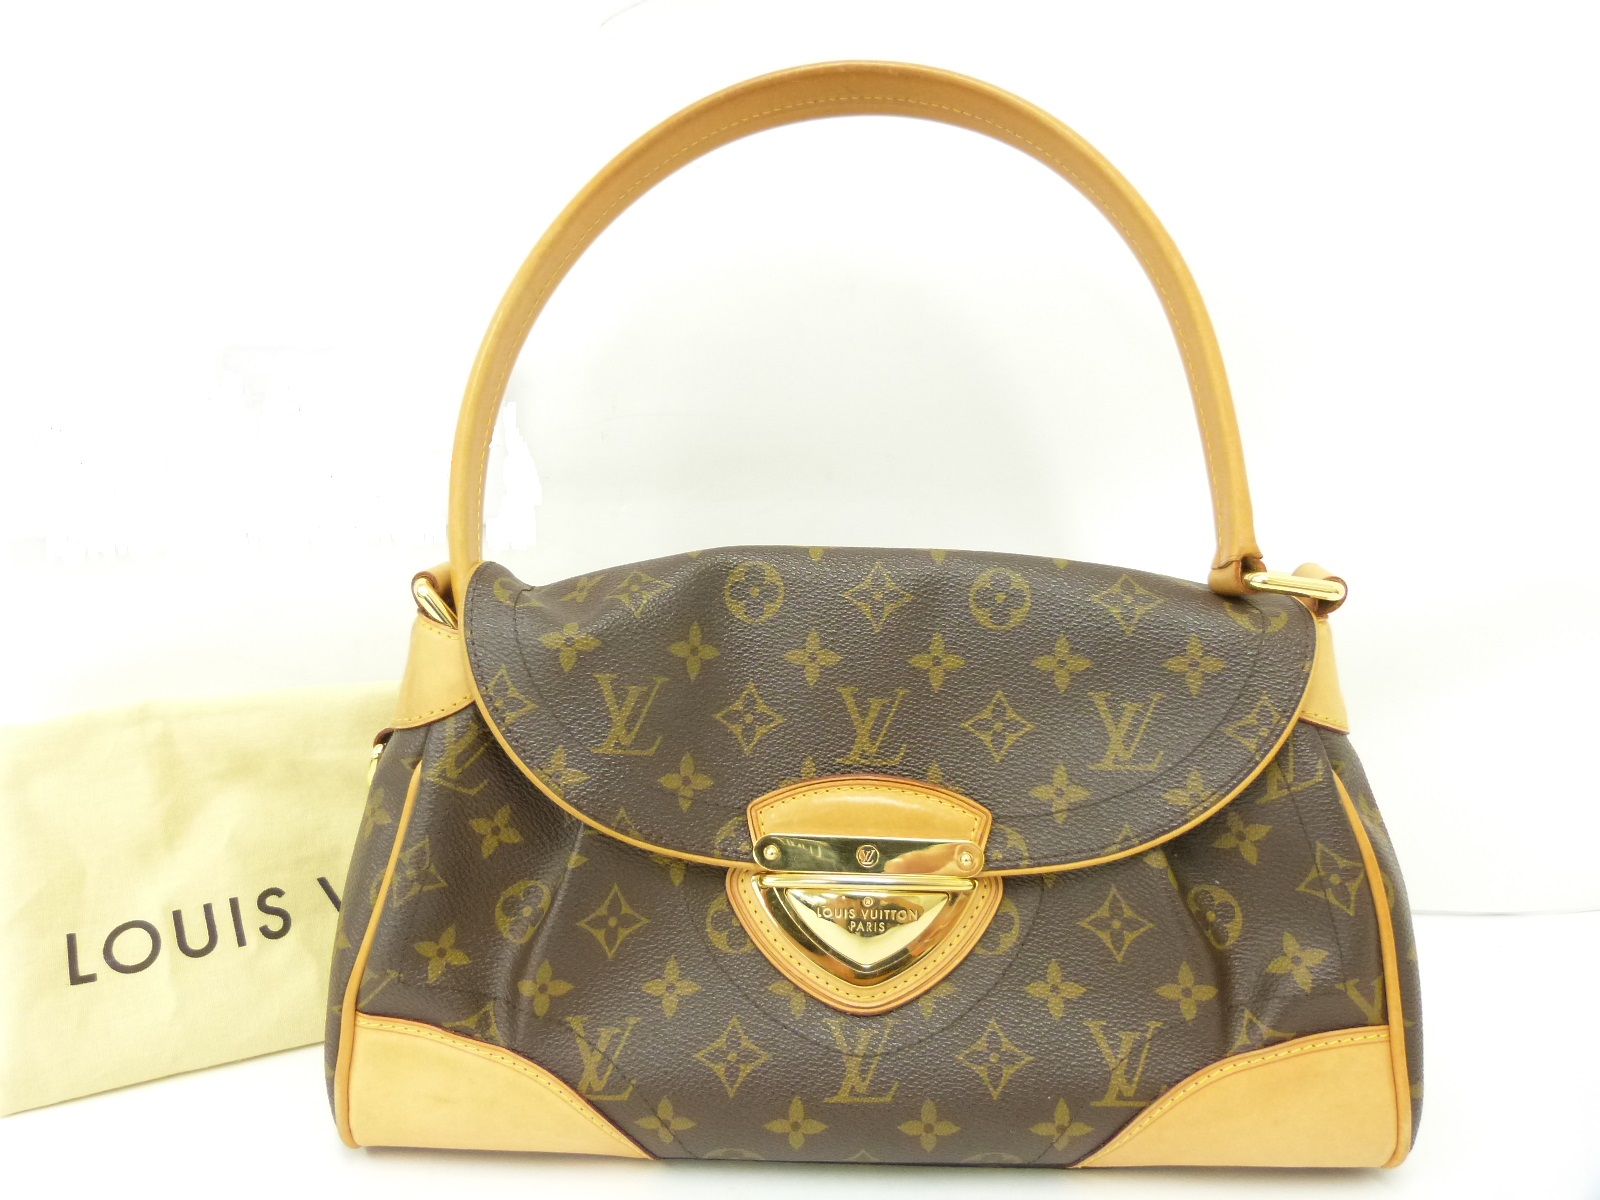 88d1f70cd186 LOUIS VUITTON Beverly Mm Monogram Canvas Shoulder Bag - My Frugal ...